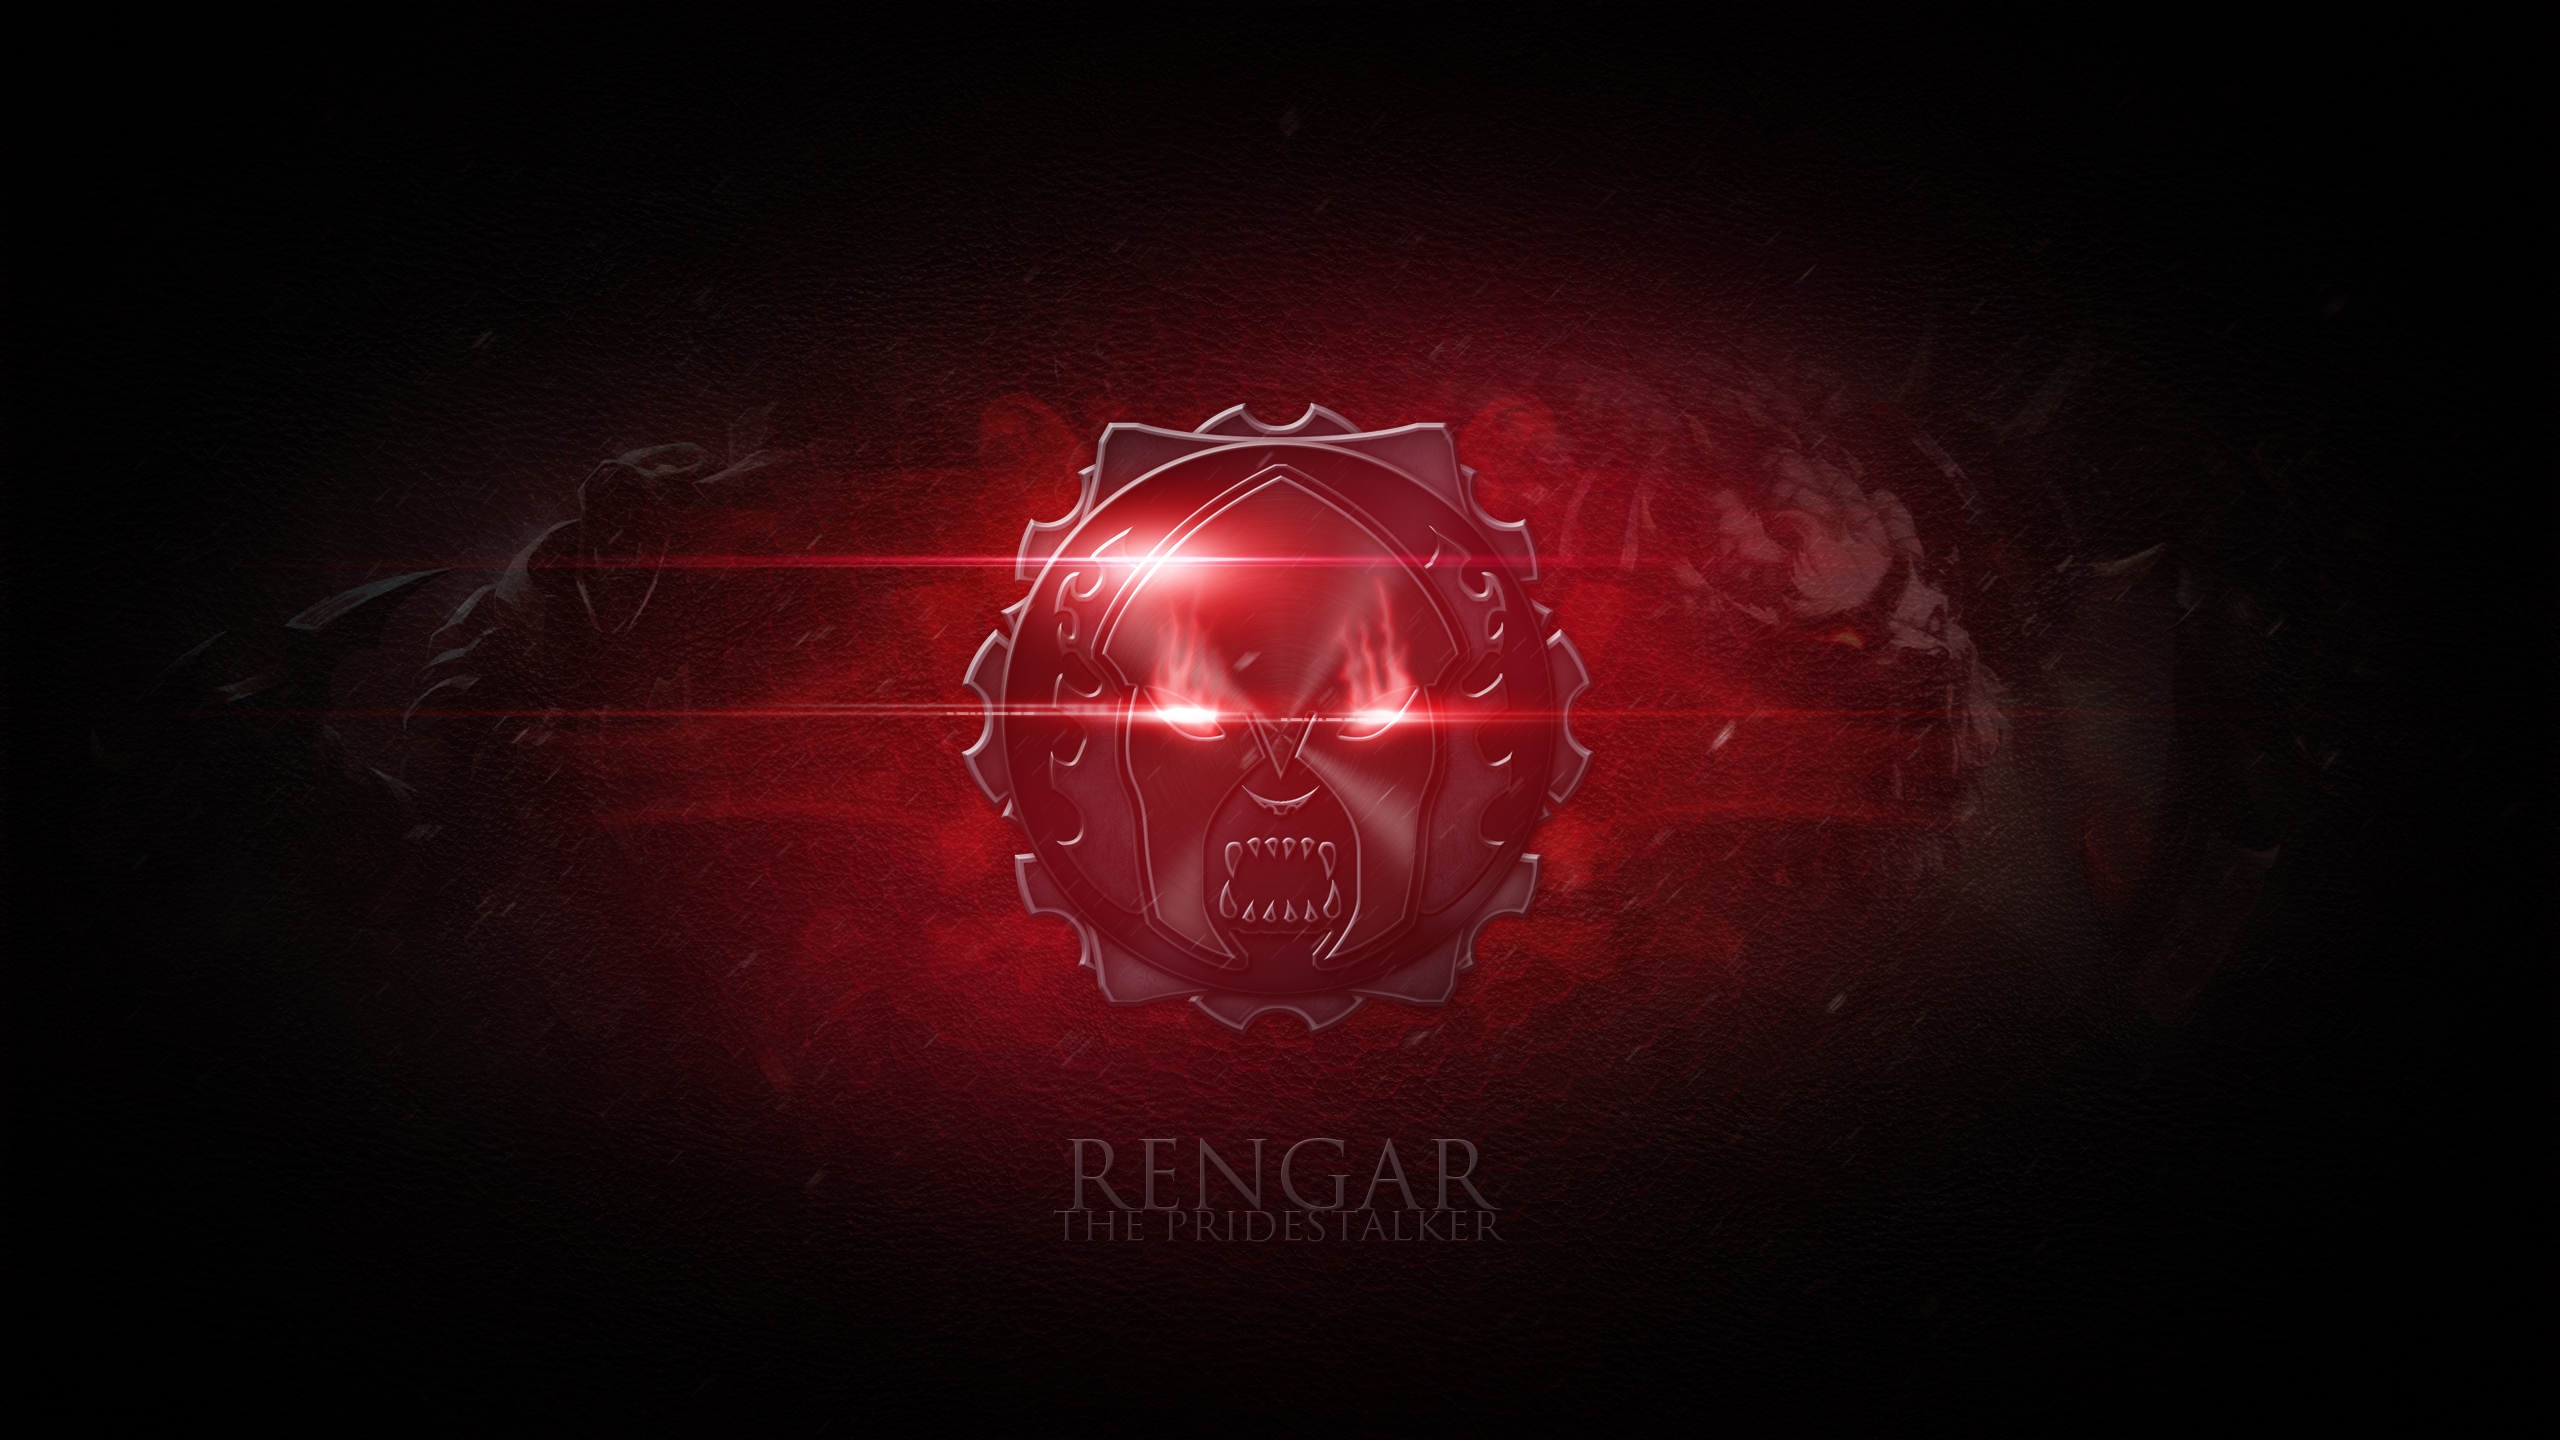 Rengar League Of Legends Wallpapers HD 1920x1080